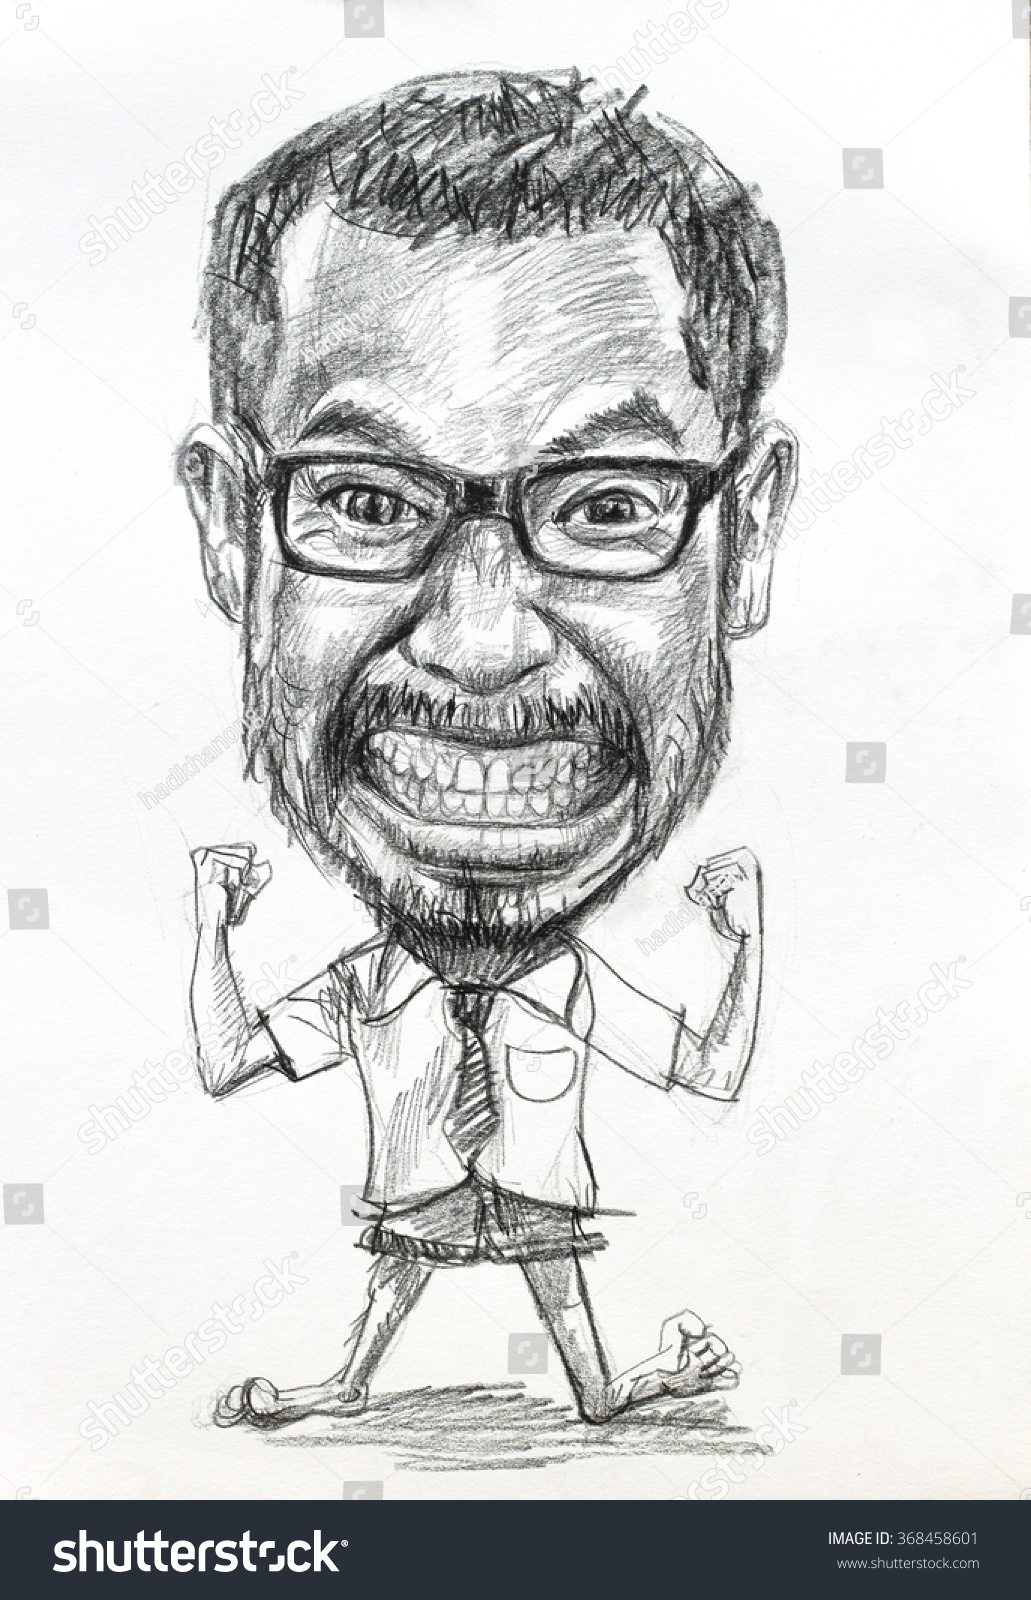 Caricature drawing of manbig head with small body by charcoal pencil on white